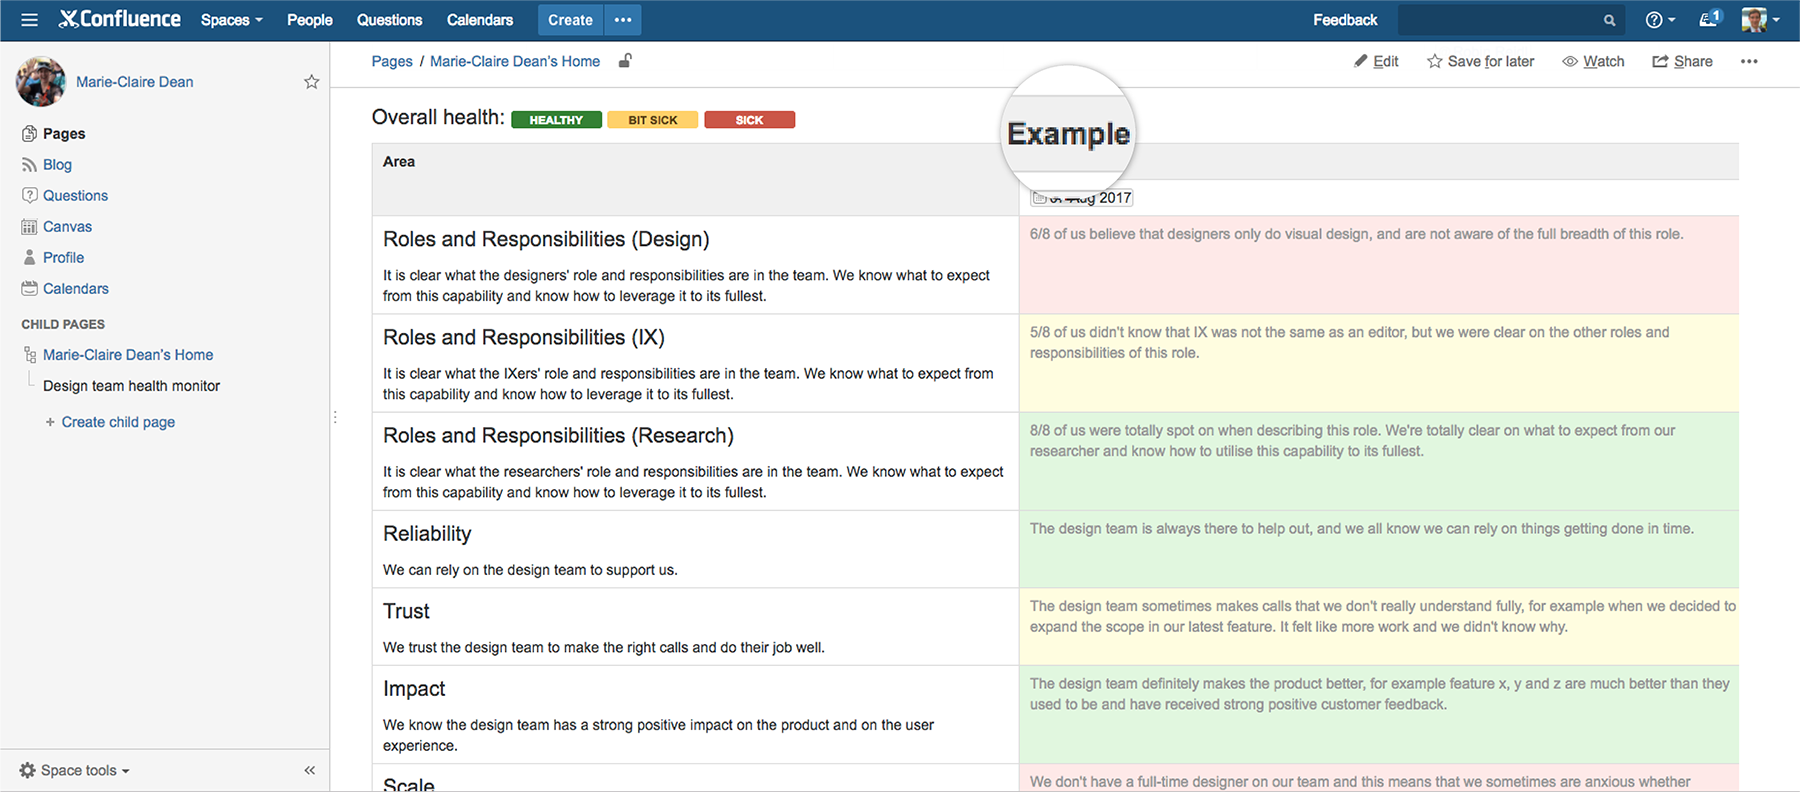 A typical confluence page showing how information can be shared in wiki format for everyone working on a project